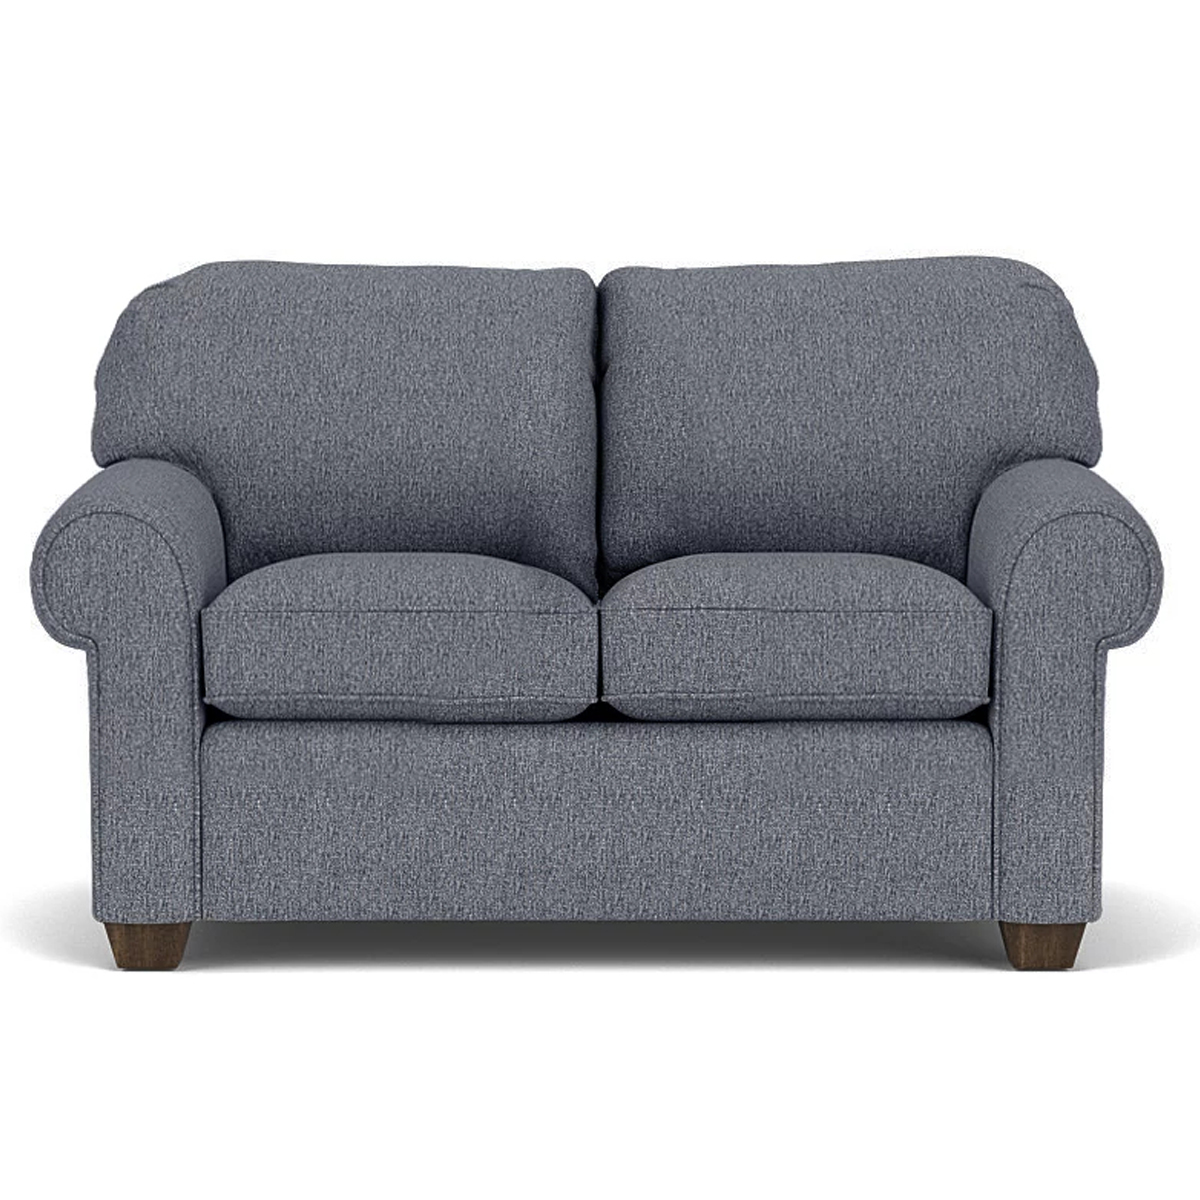 Picture of THORNTON QS LOVESEAT